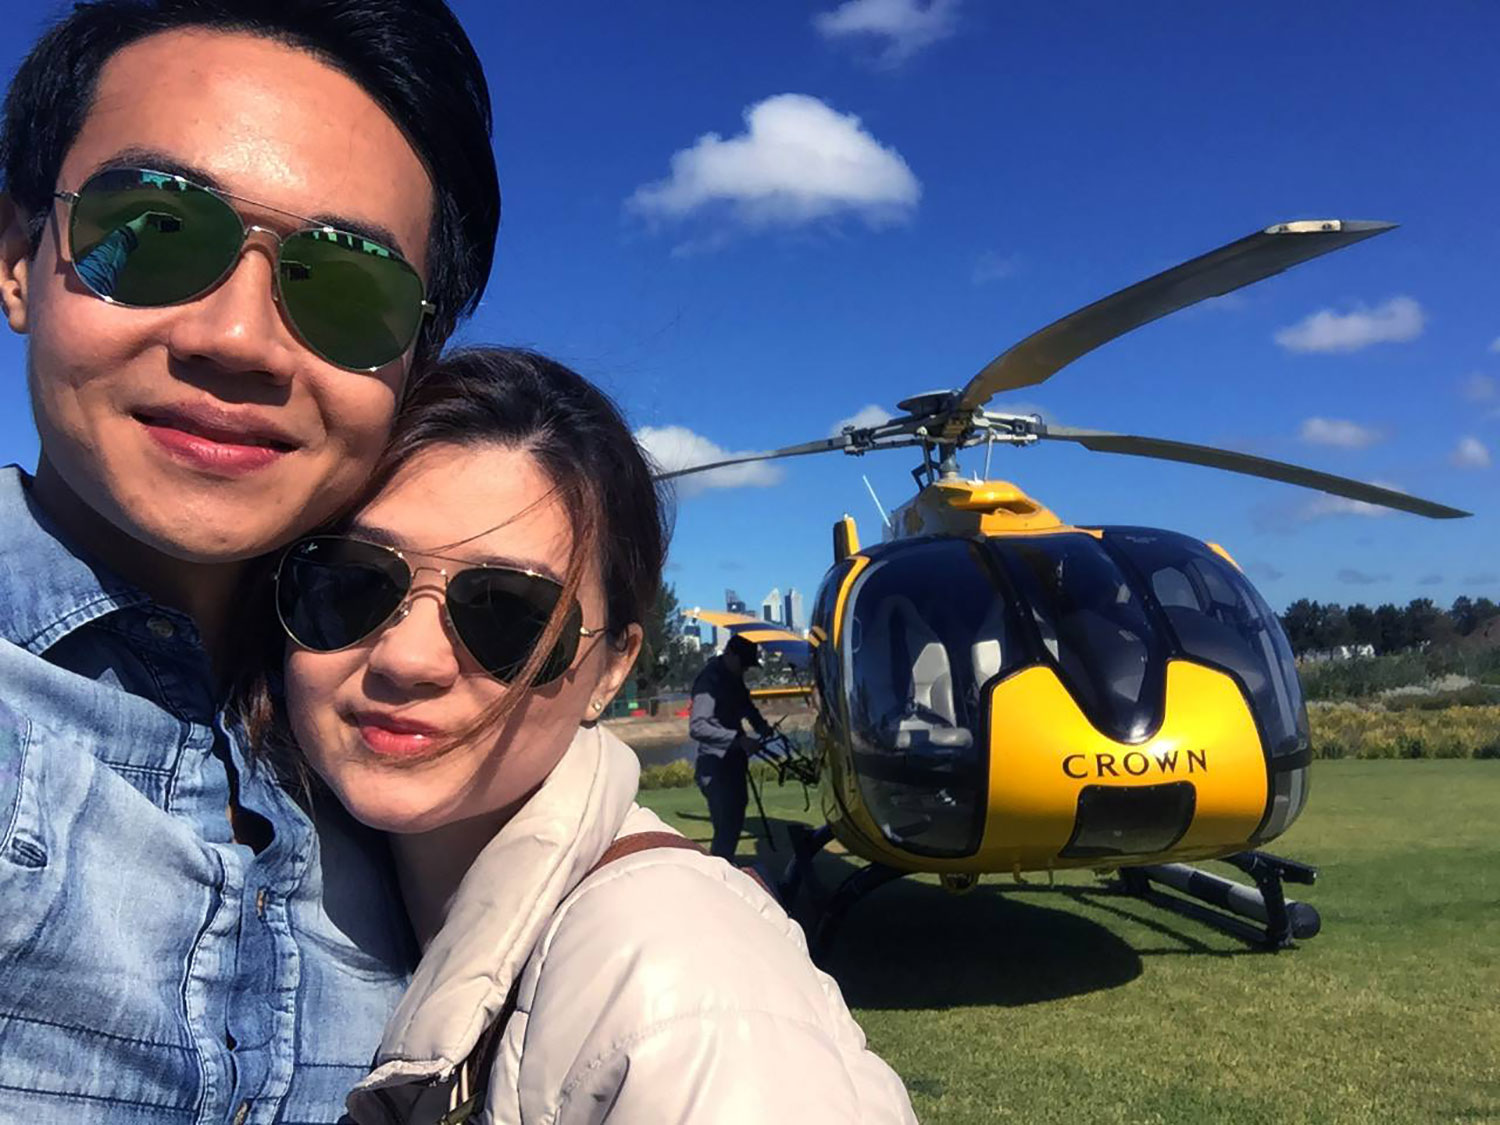 Helicopter ride to Rottnest Island